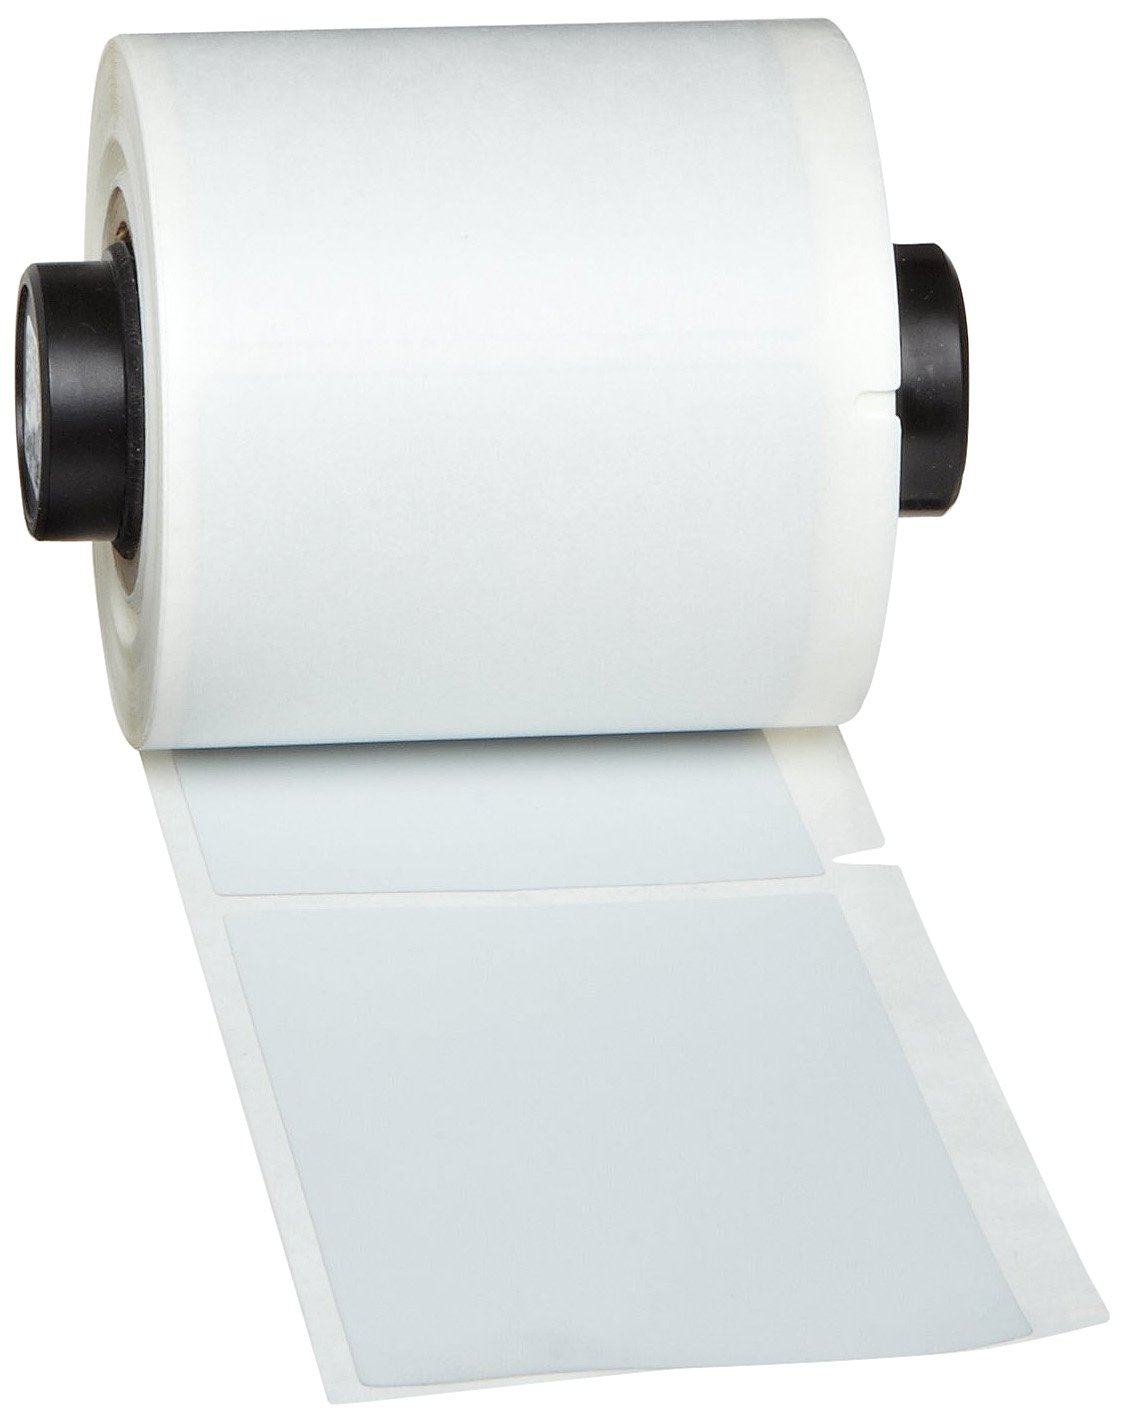 500 per Roll Brady PTL-29-486 TLS 2200 and TLS PC Link 1.5 Width x 0.5 Height B-486 Ultra Aggressive Metallized Polyester Matte Finish Silver BradyBondz Label